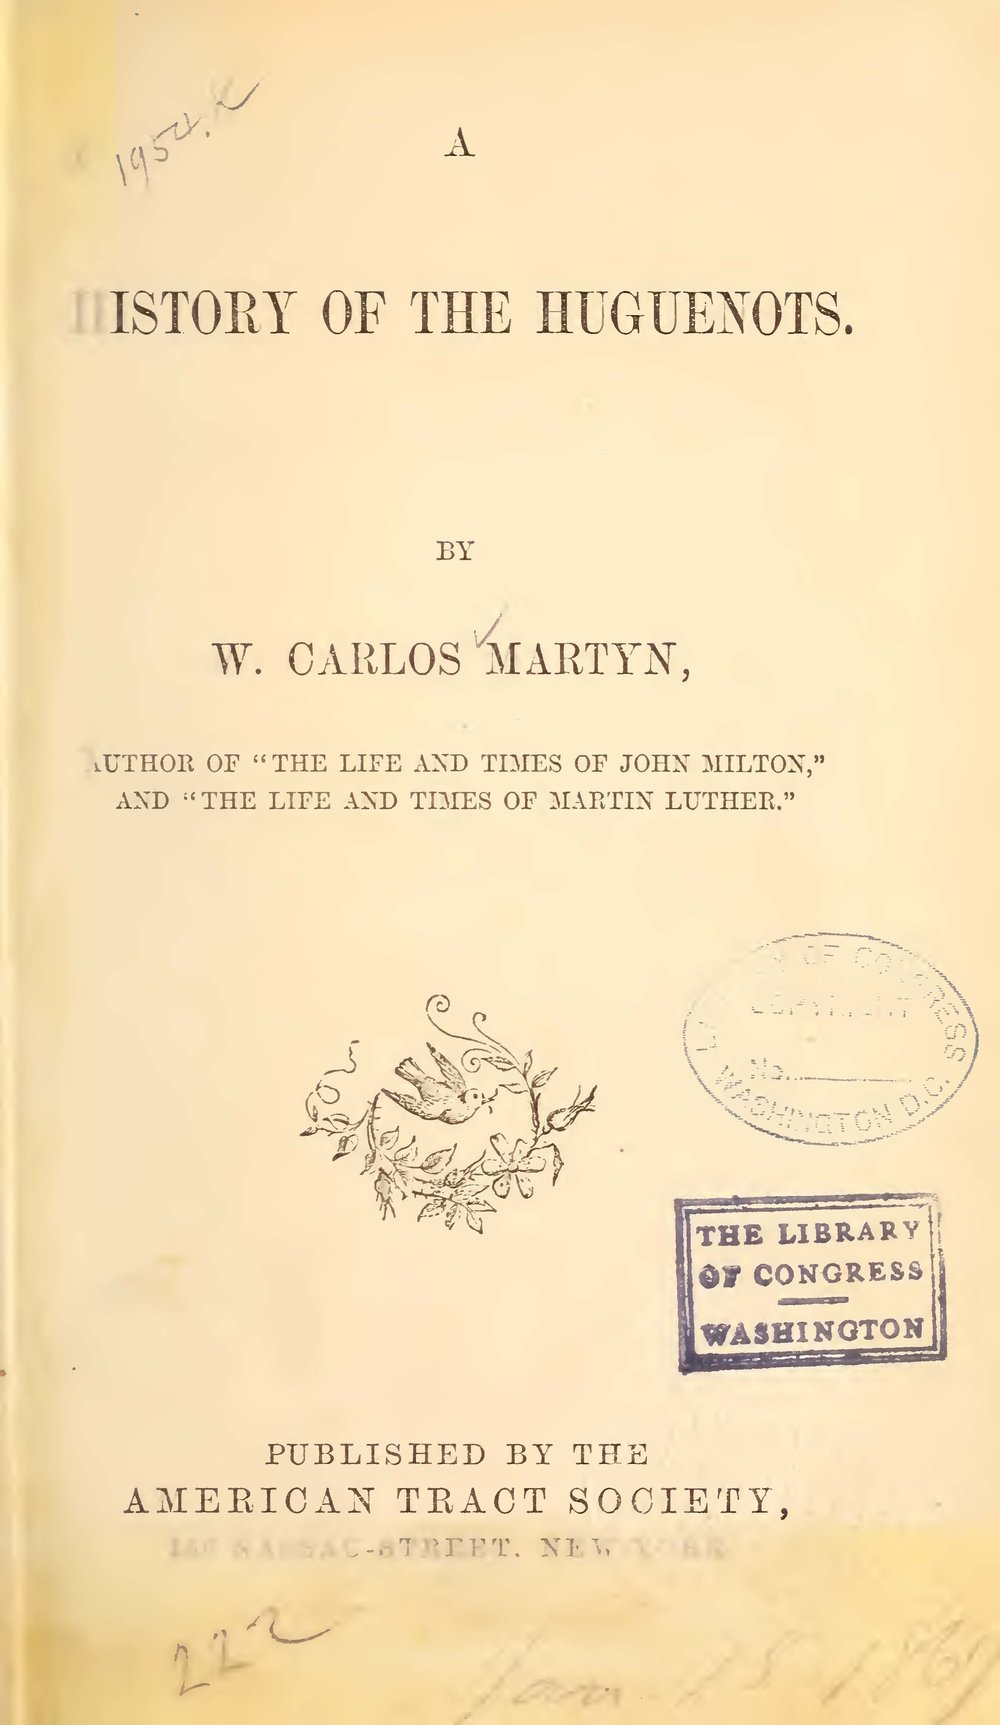 Martyn, William Carlos, A History of the Huguenots Title Page.jpg